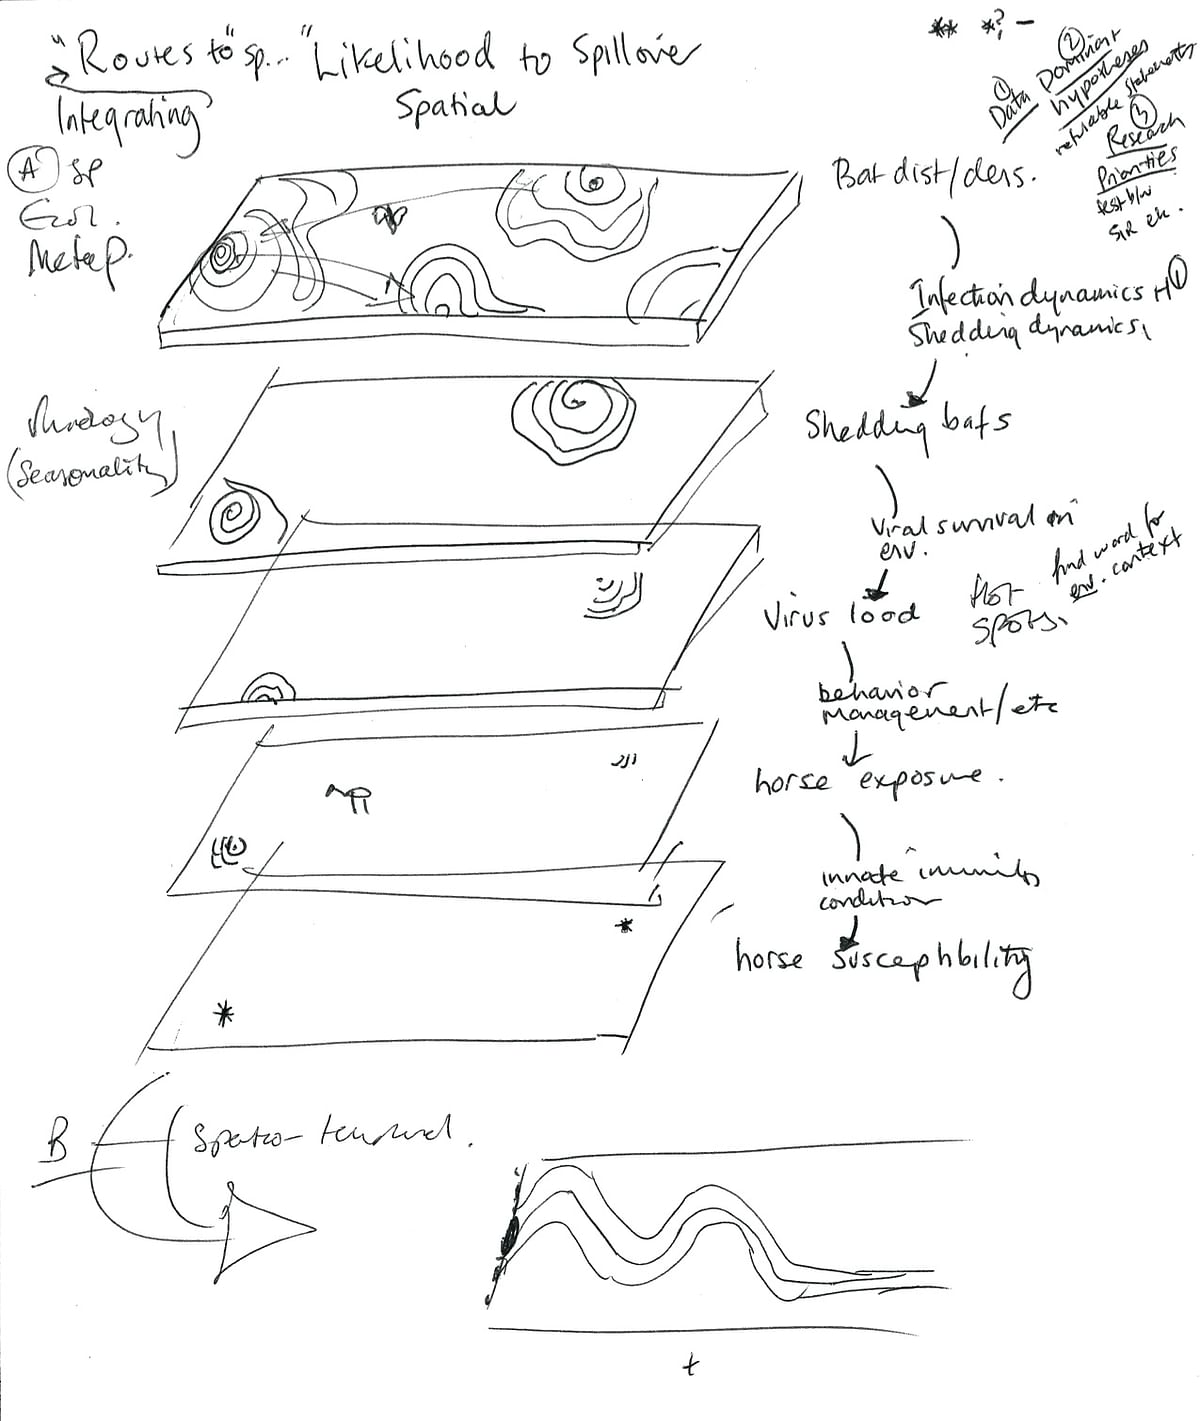 When Raina Plowright began to look at the many factors that influence the spillover potentialof viruses like Hendra and Nipah,she began envisioning the route a virus must take as being punctuated by a series of layers whose holes can open or close to make transmission easier or harder. This is one of her early sketches of that concept.